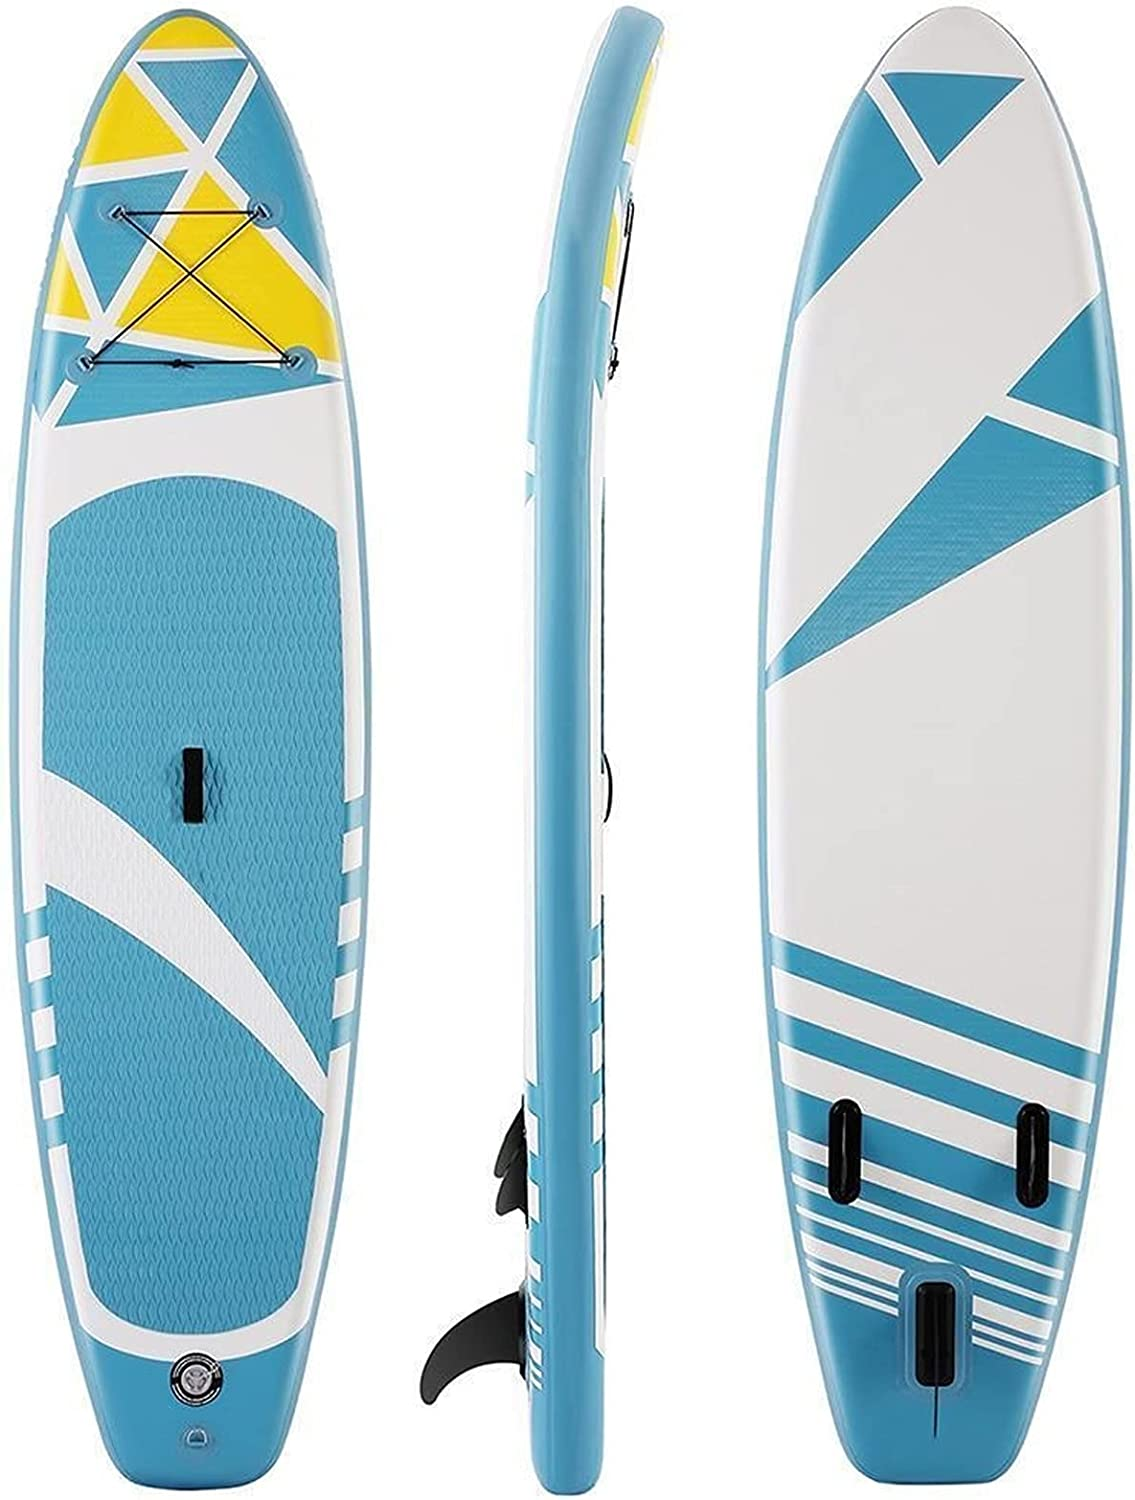 CHENGSYSTE Inflatable Paddle Selling Board High quality new Bo up Stand